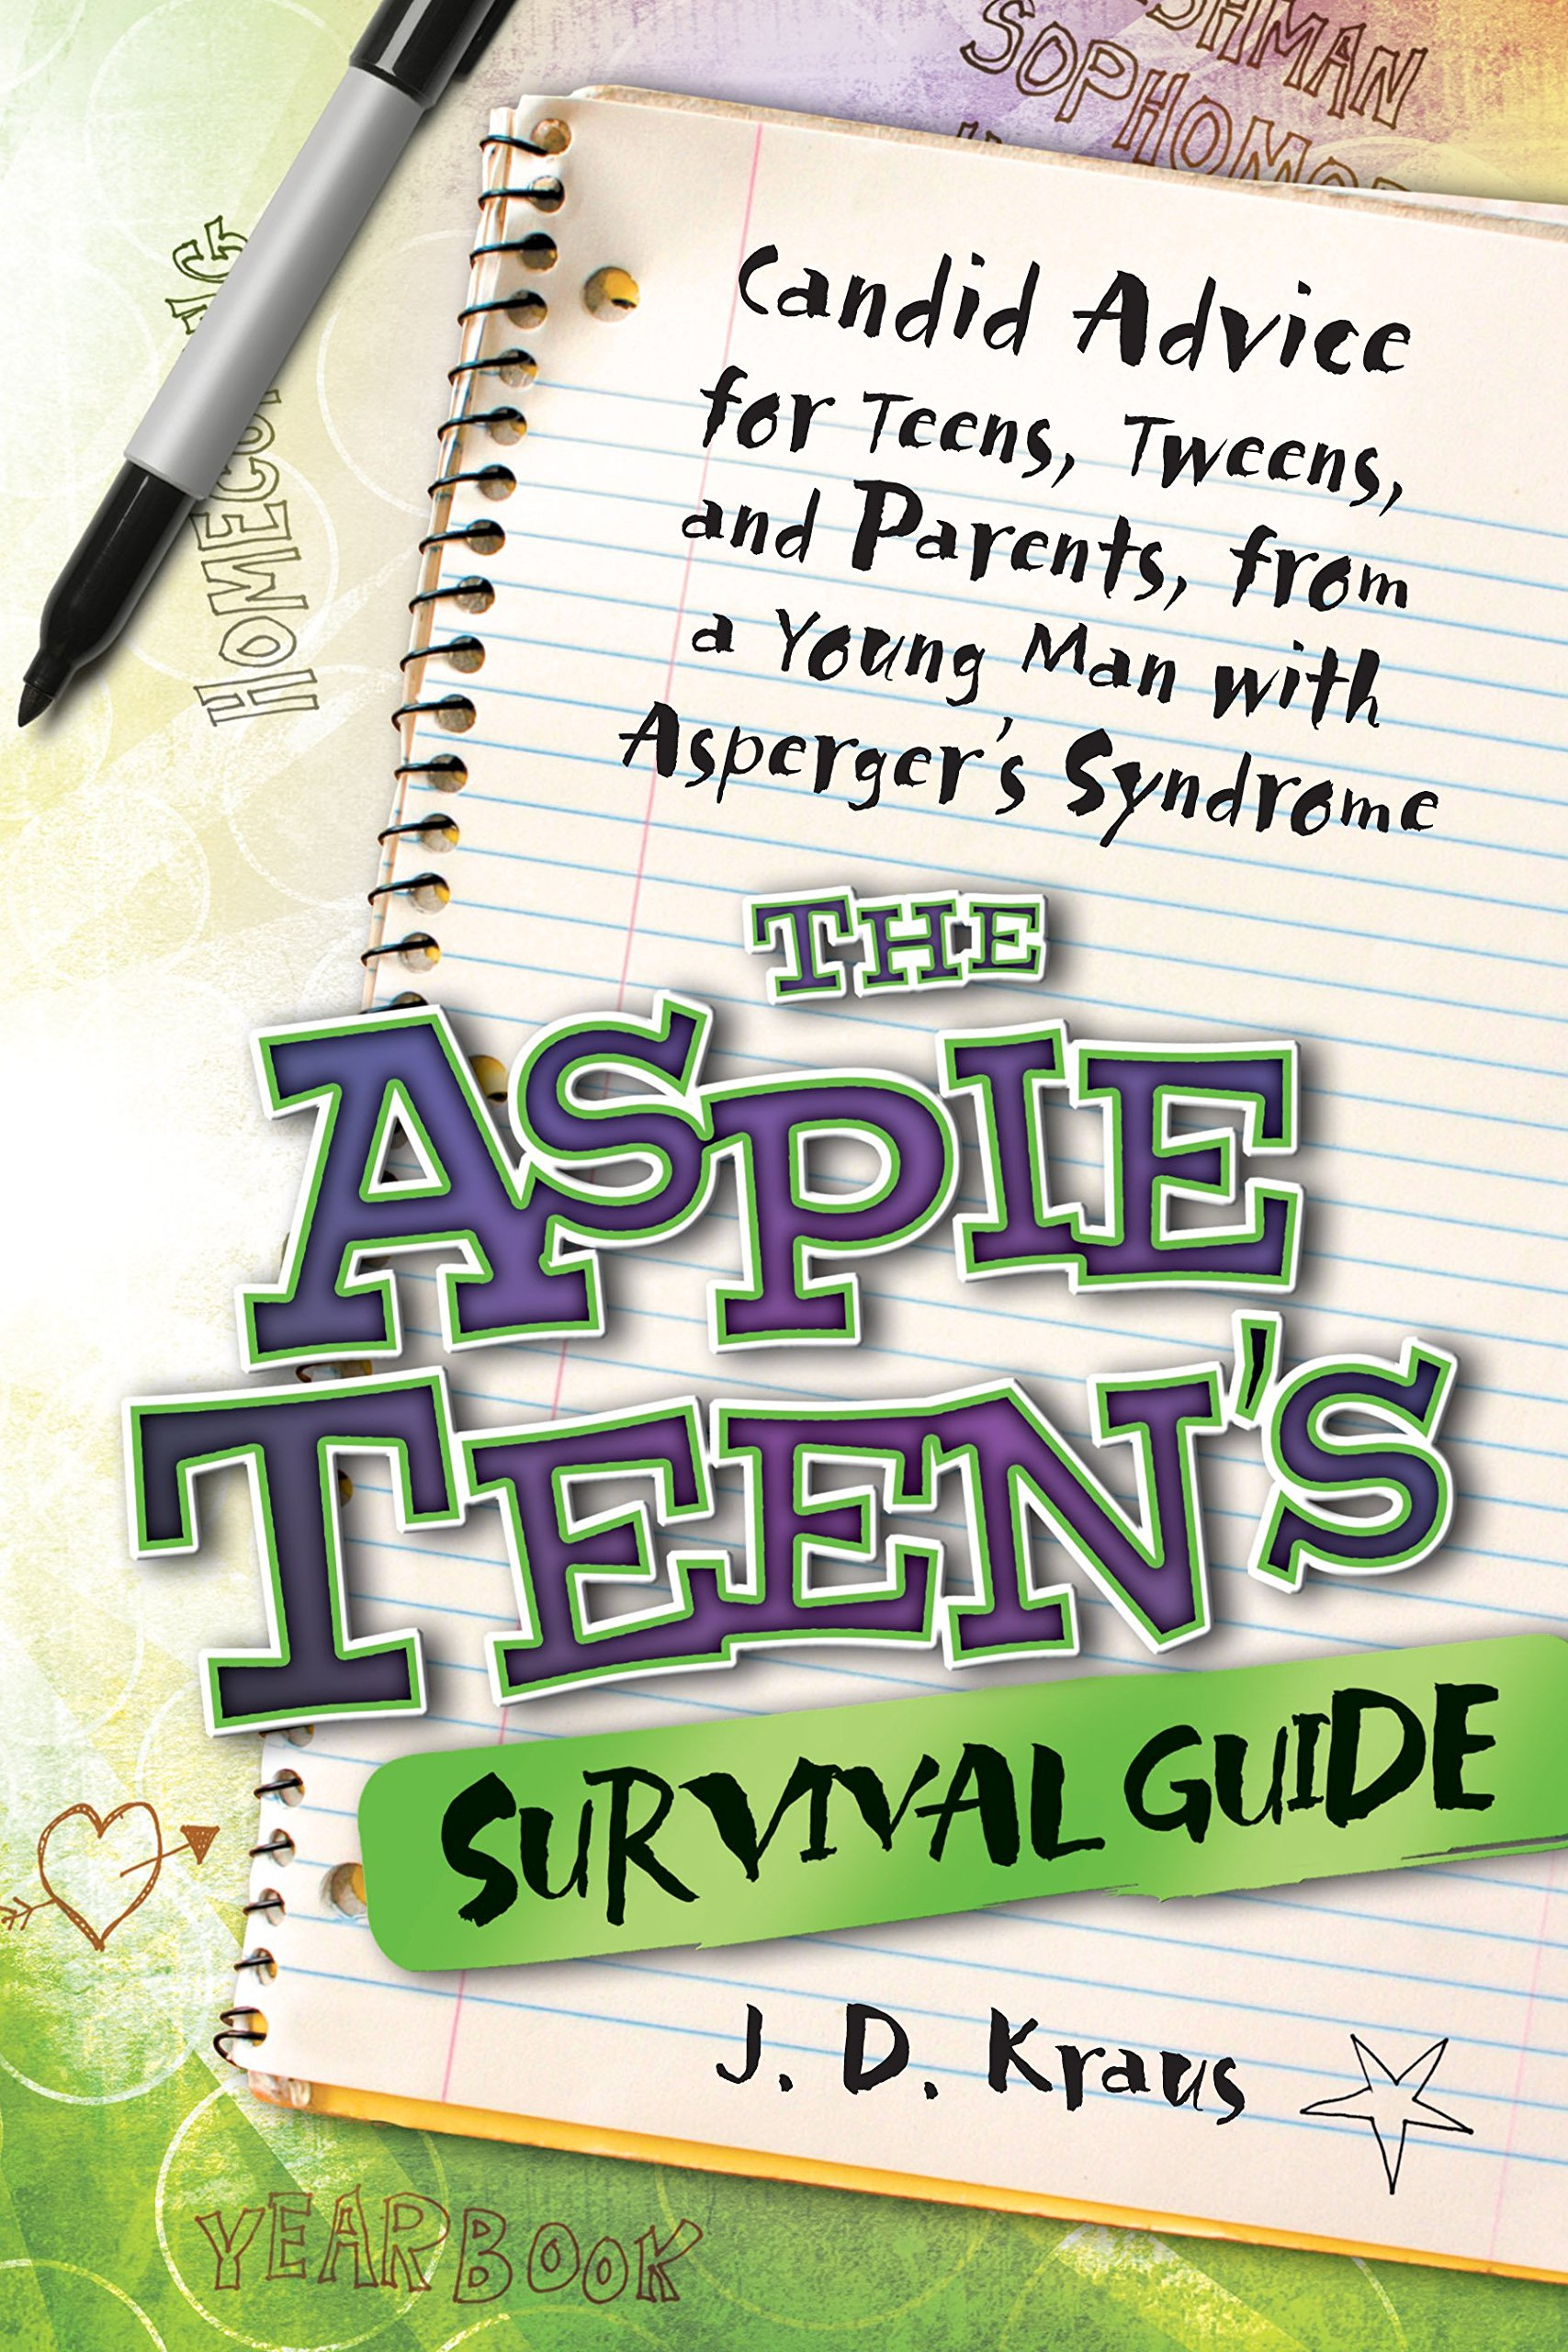 Aspie Teens Survival Guide Aspergers product image